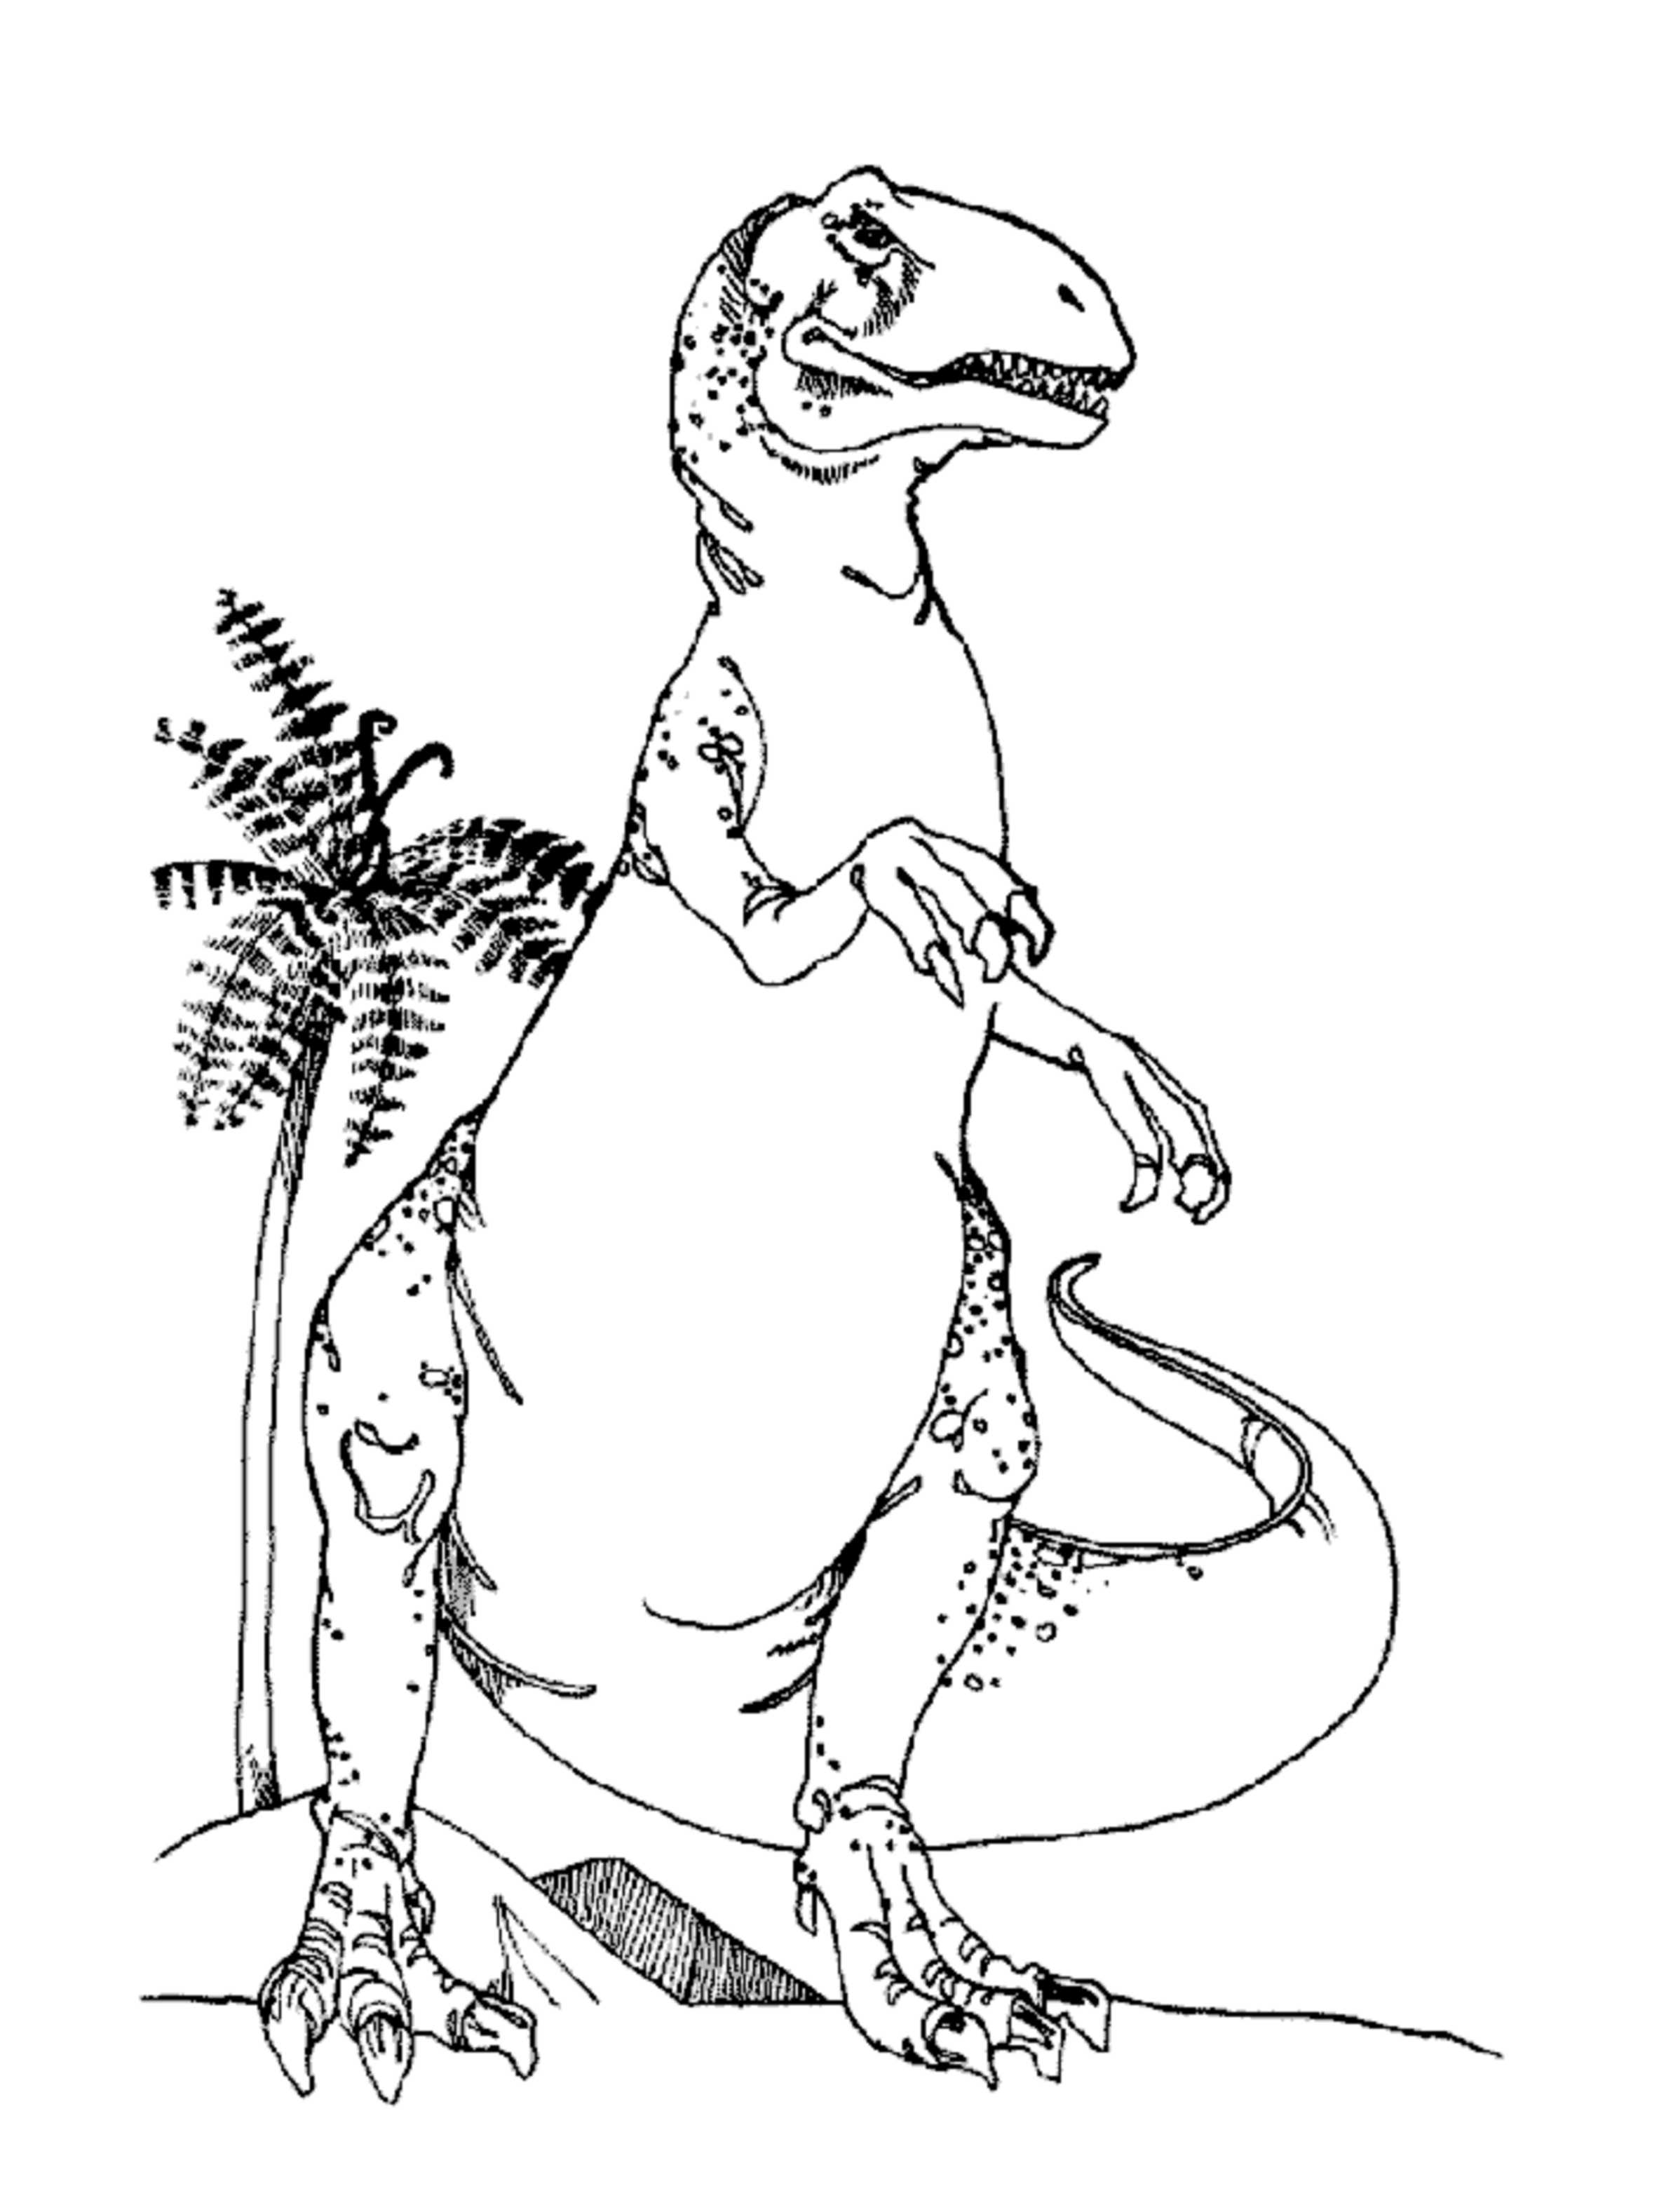 Cute T-rex Coloring Page - Coloring Home